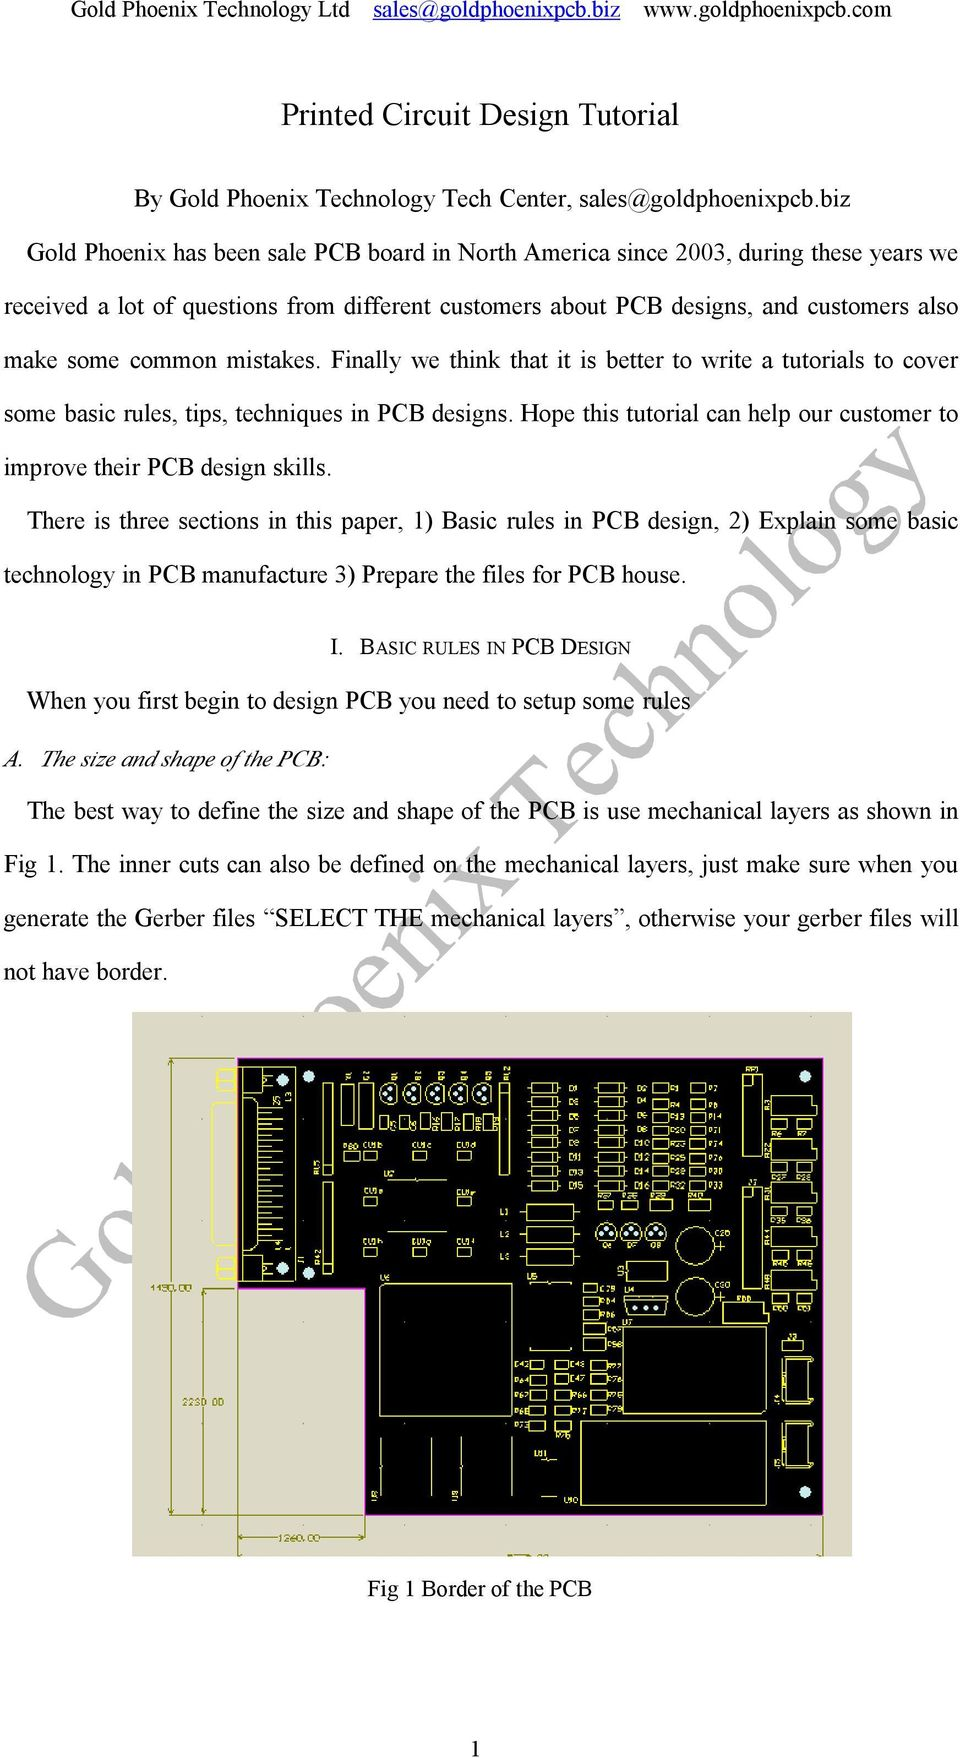 Printed Circuit Design Tutorial Pdf Systems Pcb Board Of 2oz Finished Copper For Sale Mistakes Finally We Think That It Is Better To Write A Tutorials Cover Some